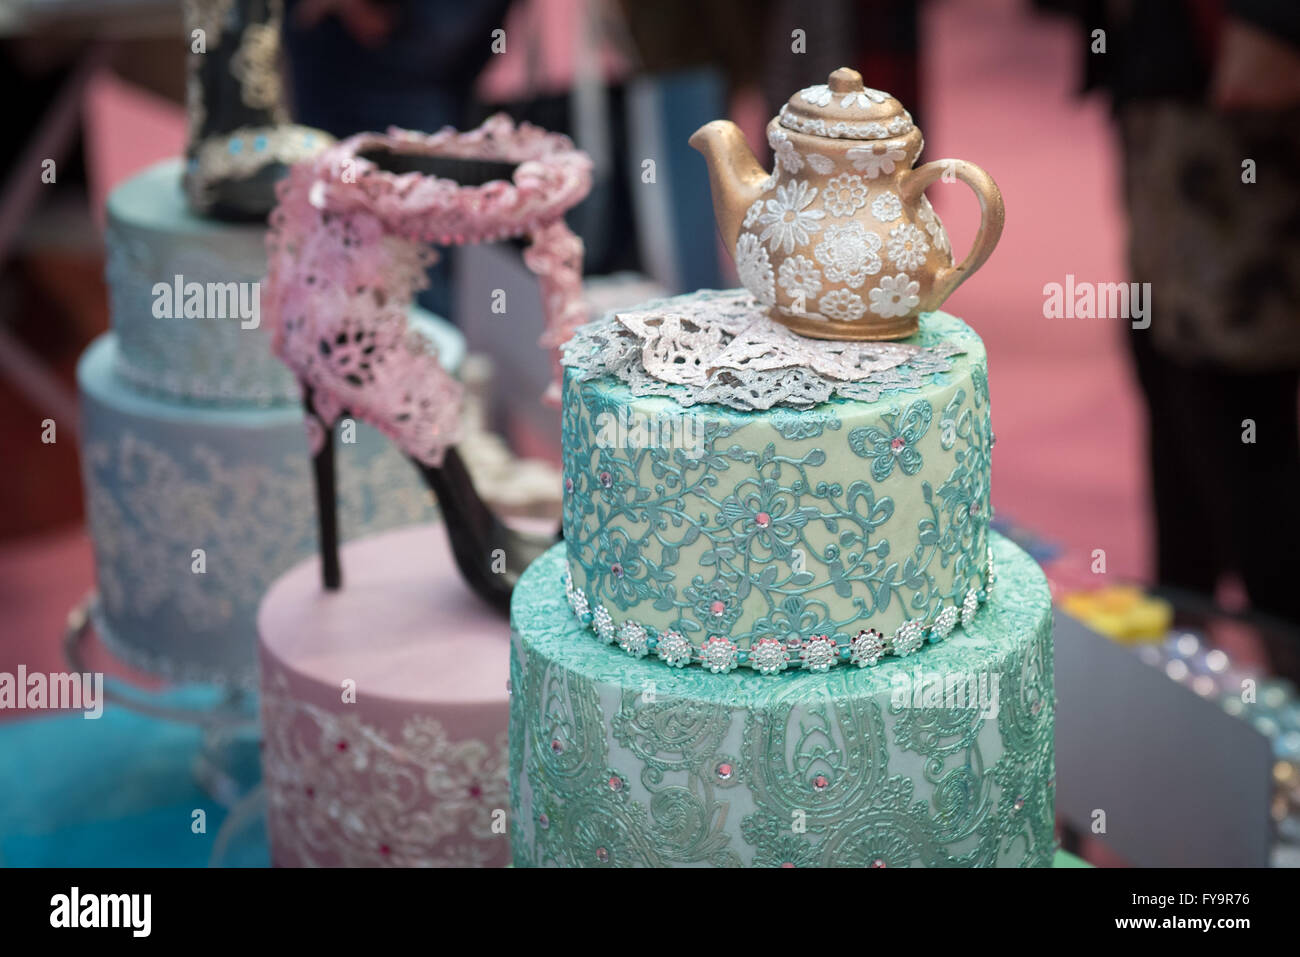 Sensational Teapot Birthday Cake Decoration At Cake International The Stock Personalised Birthday Cards Cominlily Jamesorg